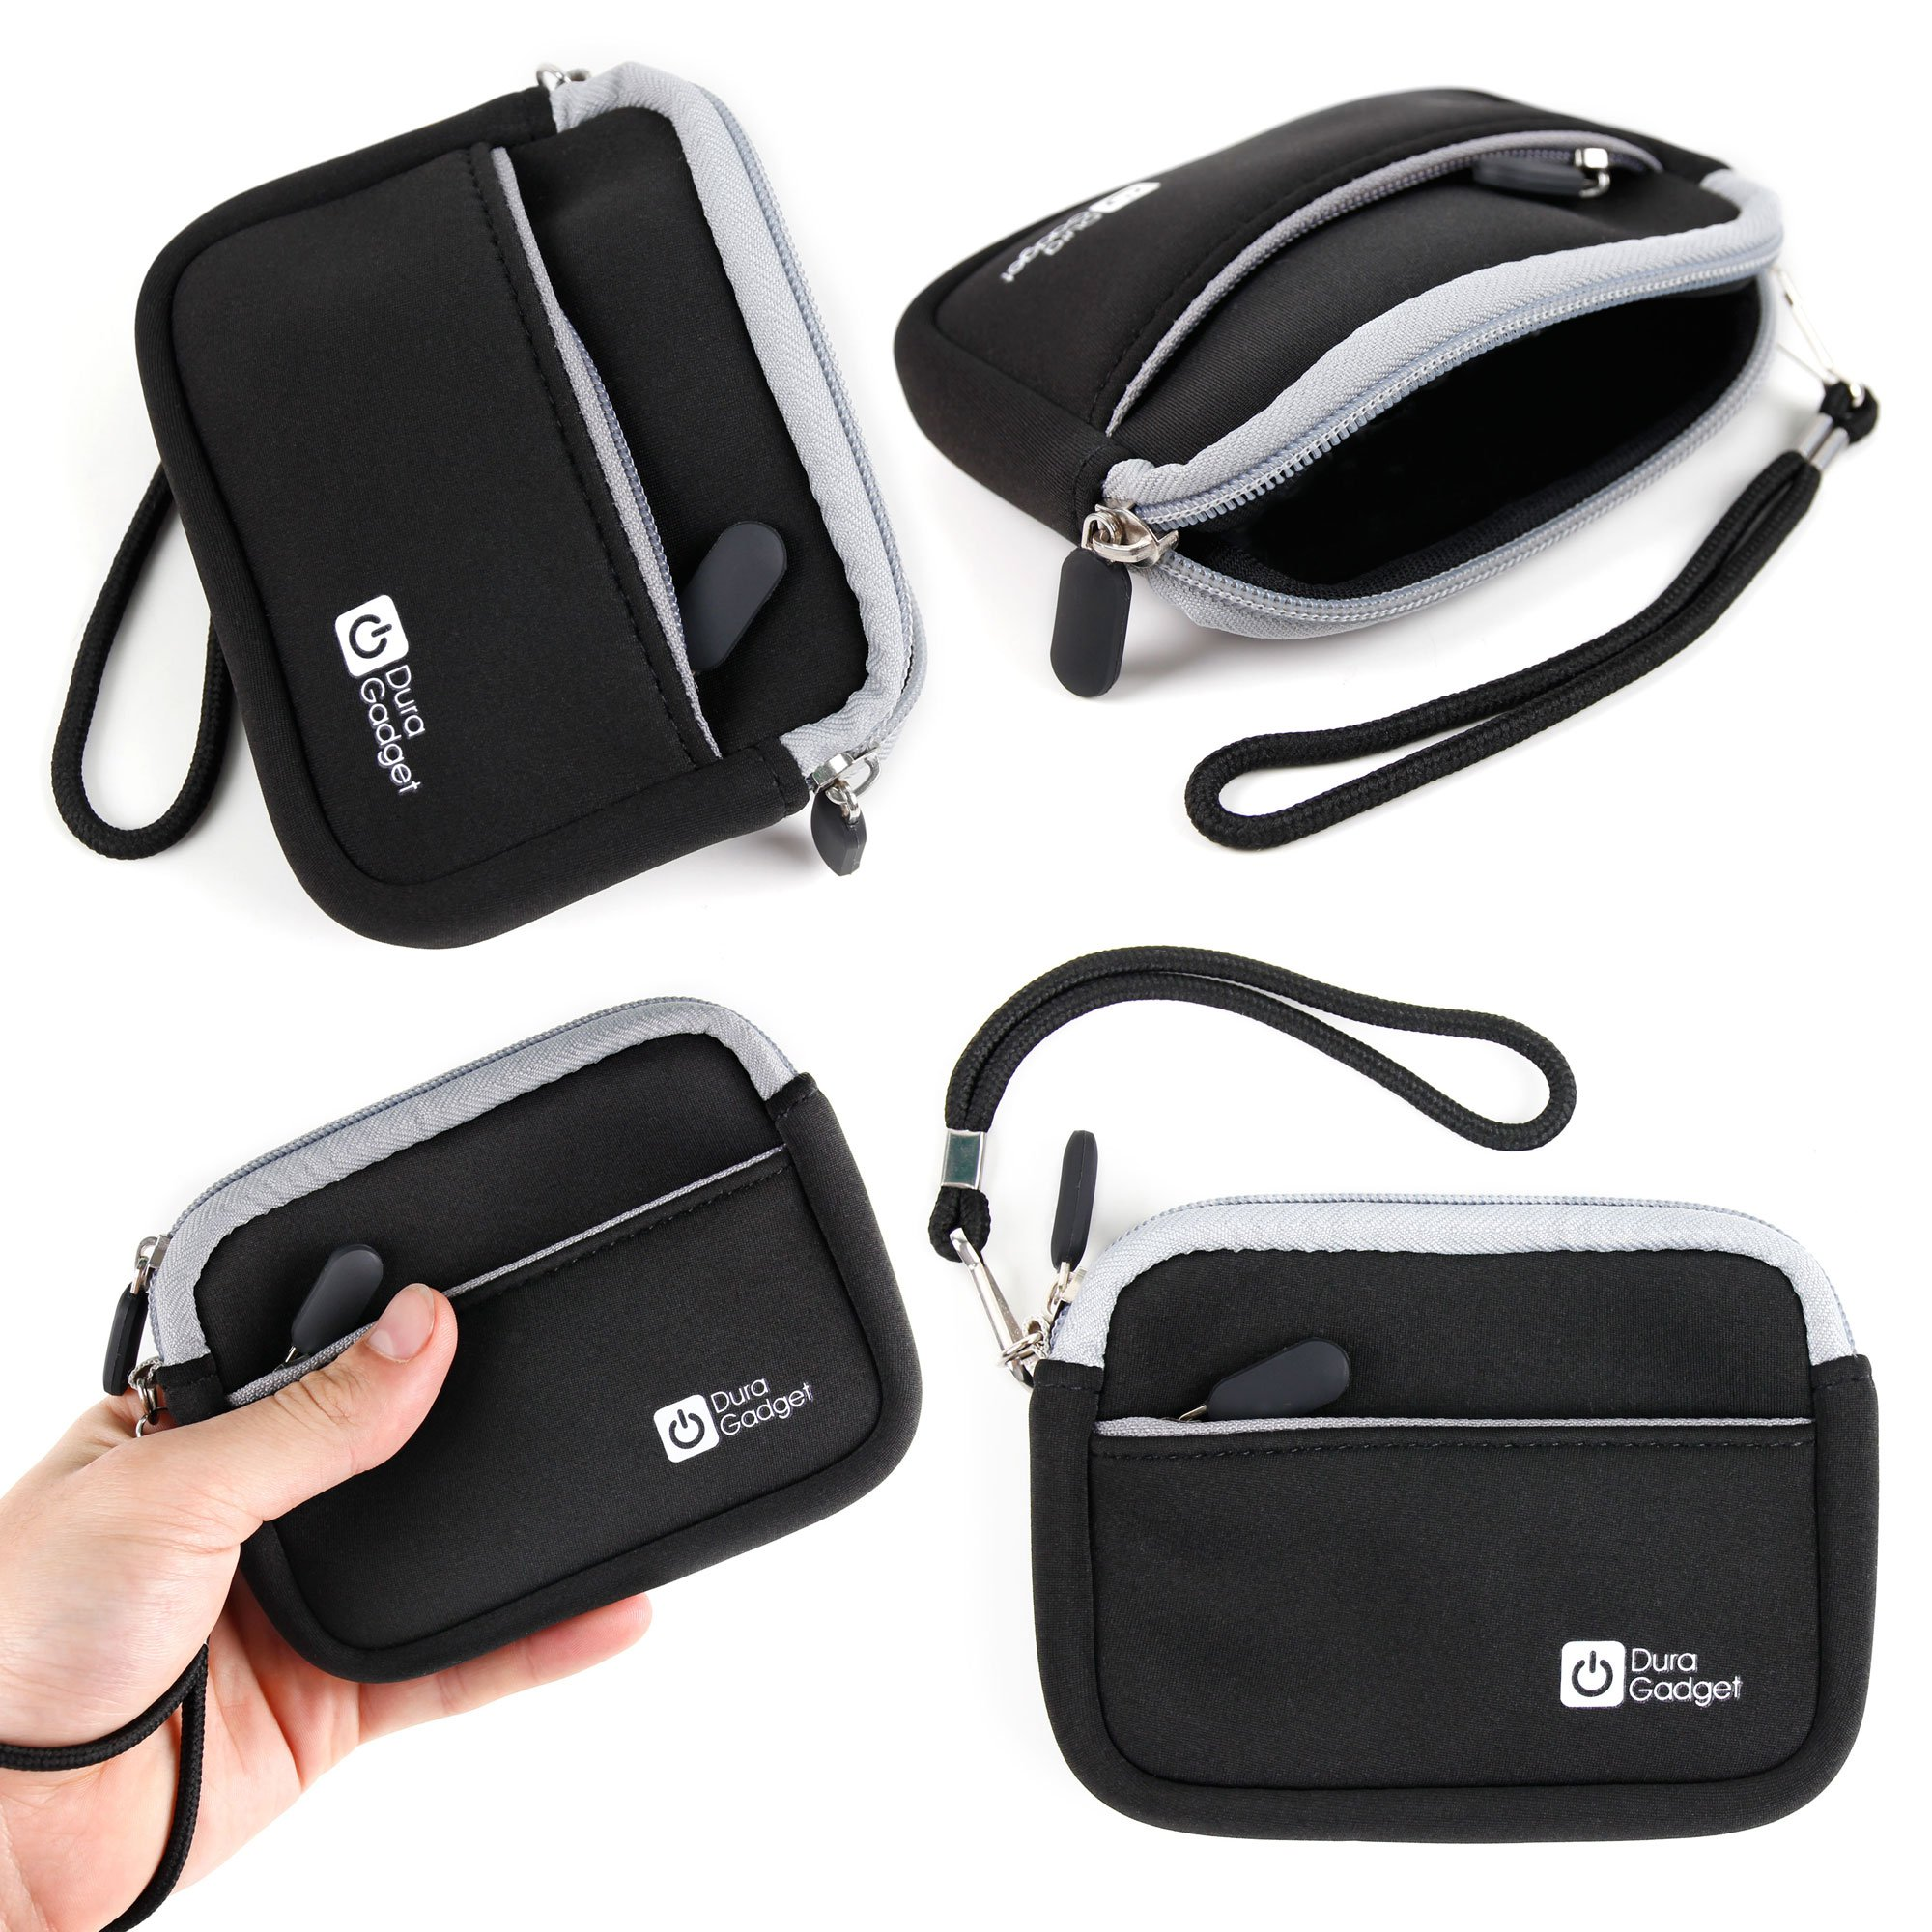 DURAGADGET Black Neoprene Case with Wrist Strap & Additional Storage for The Medion E49018